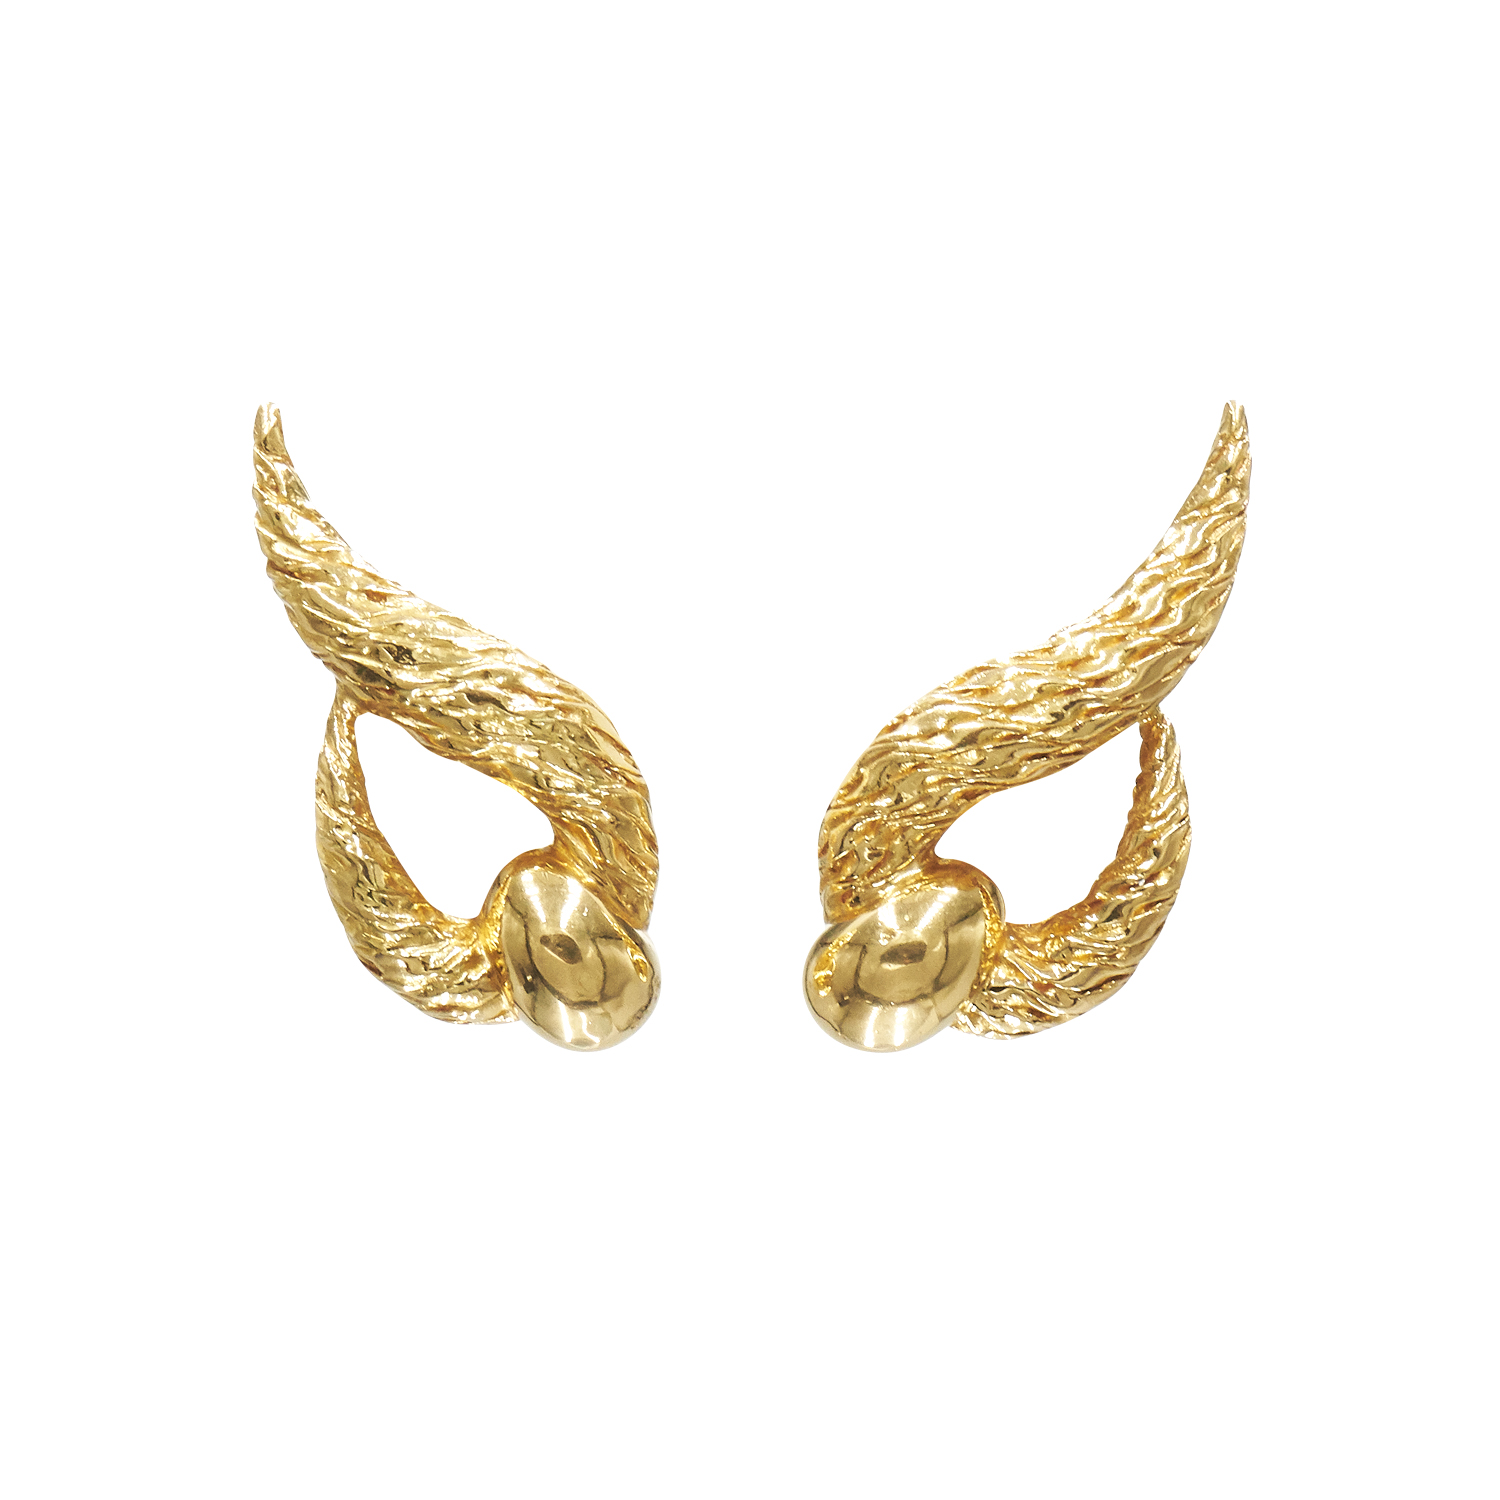 18K Yellow Gold Textured Stylized Knot Earrings by Cartier Style E-38819-FL-0-0